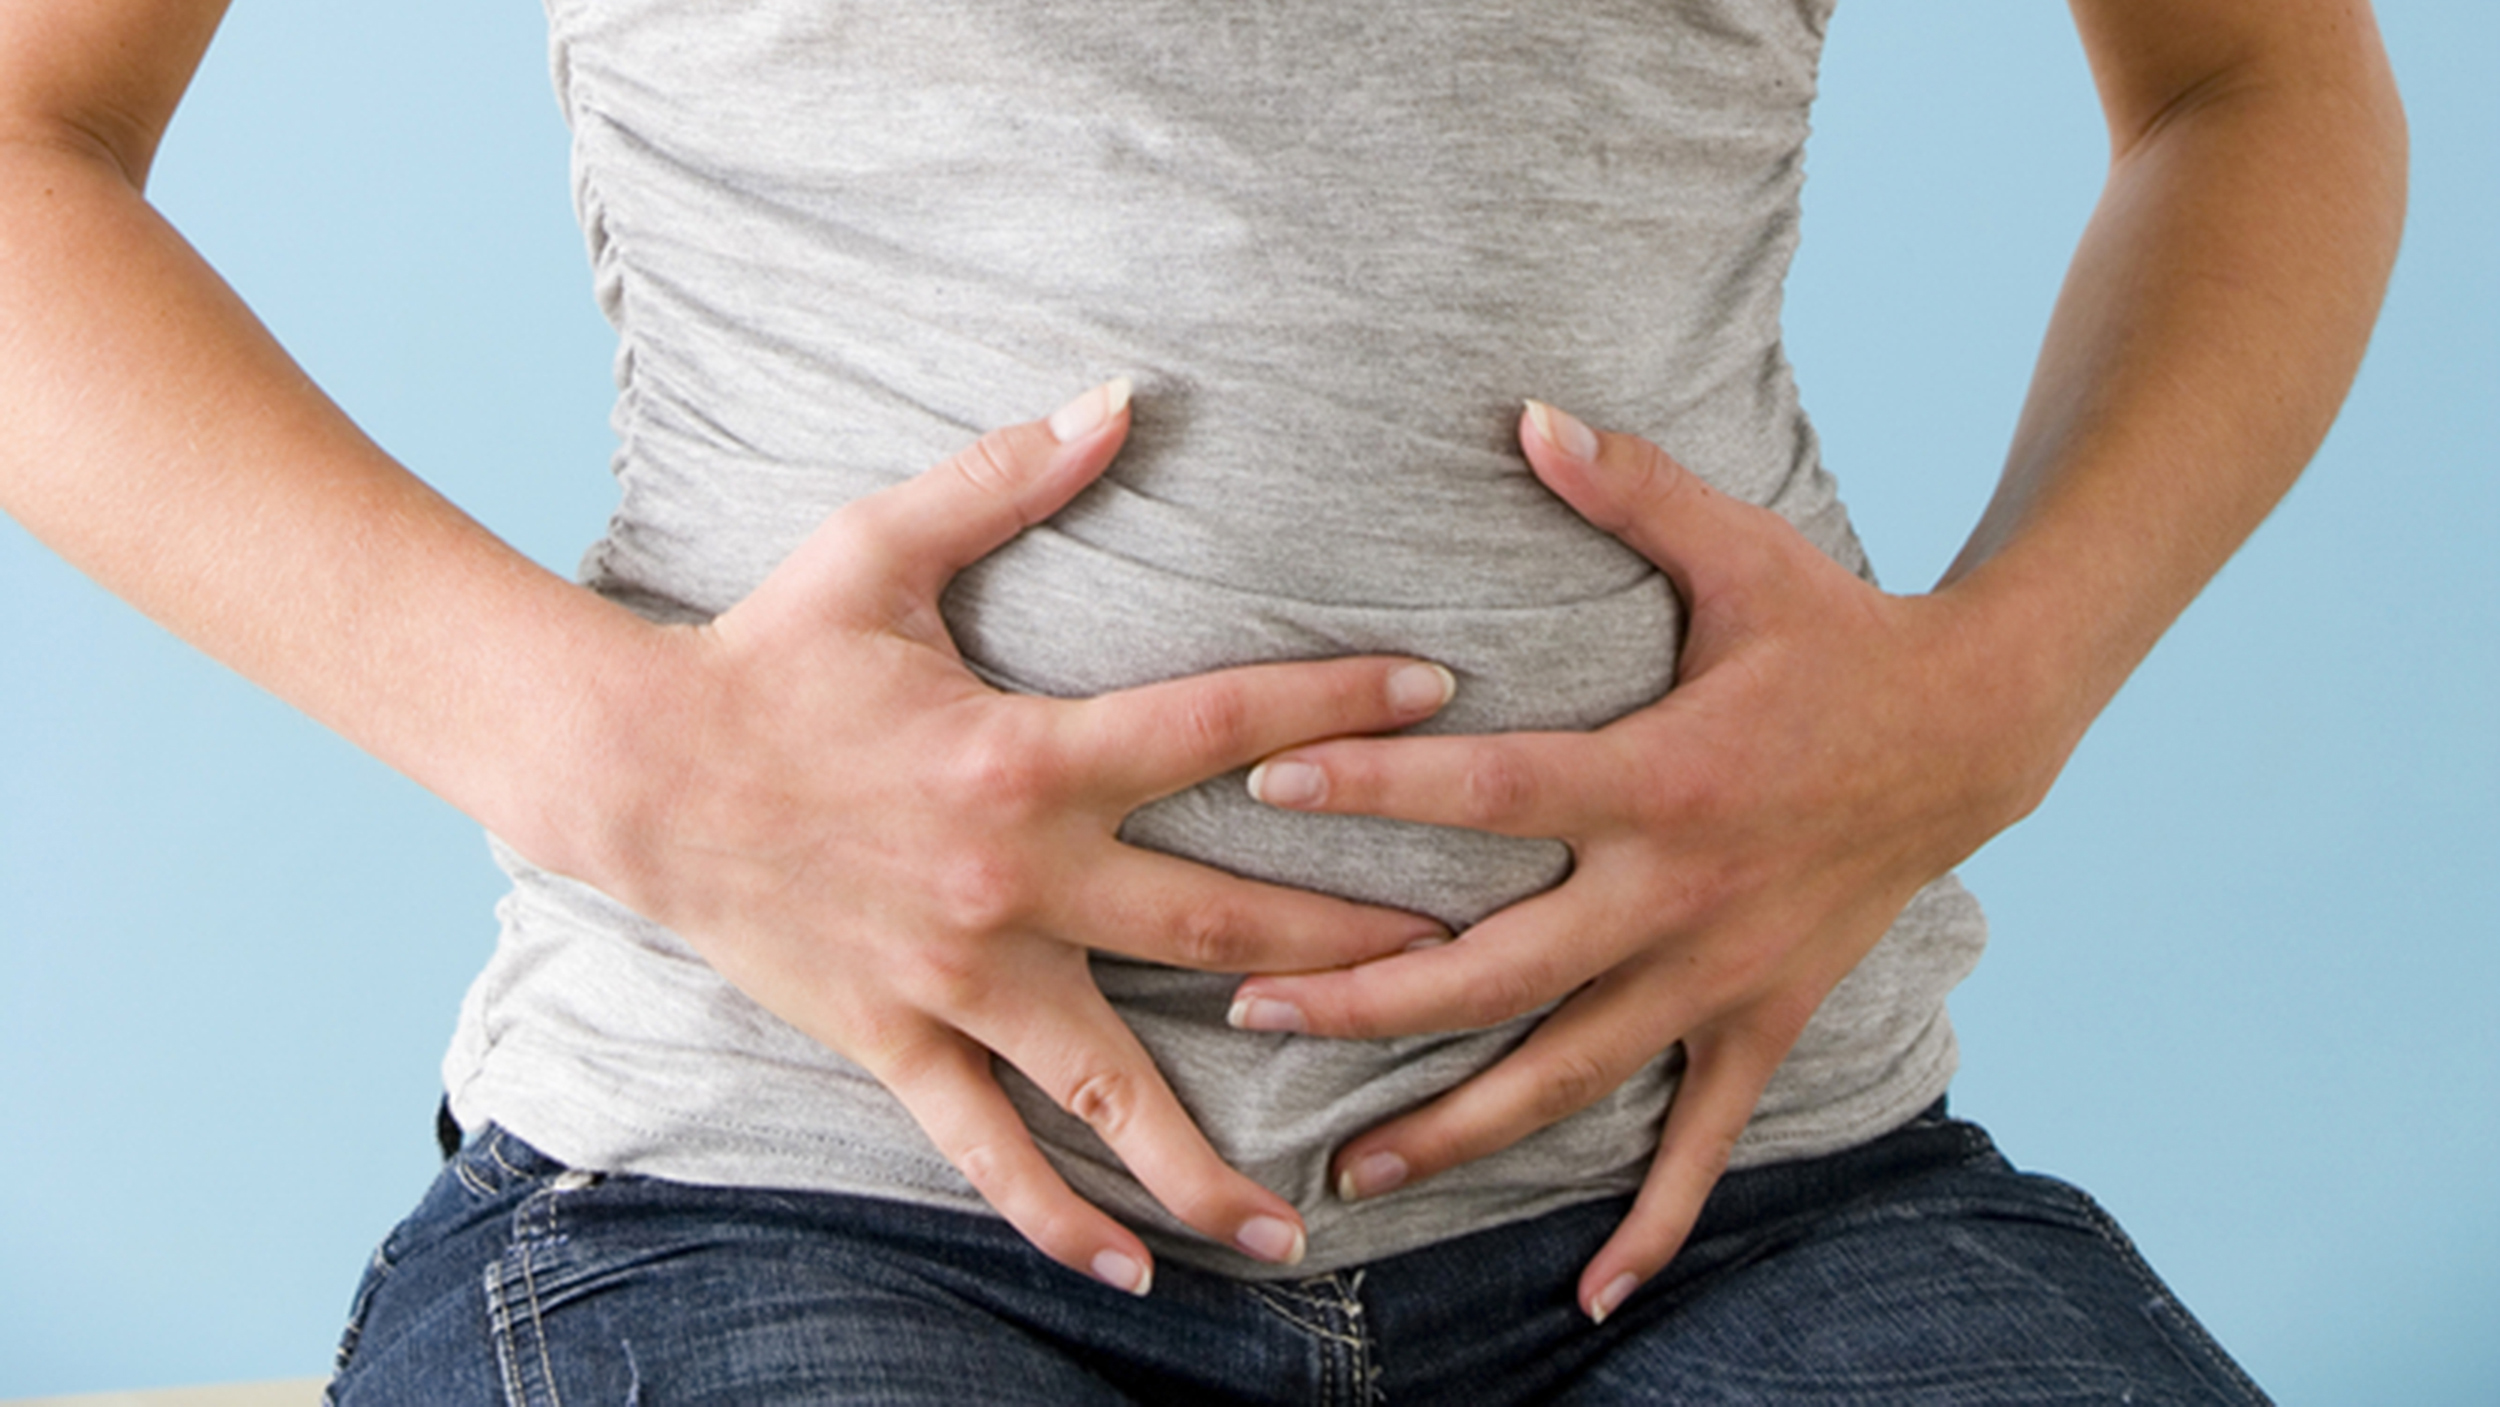 How Do You Get Rid of a Gas Bubble in Your Stomach?